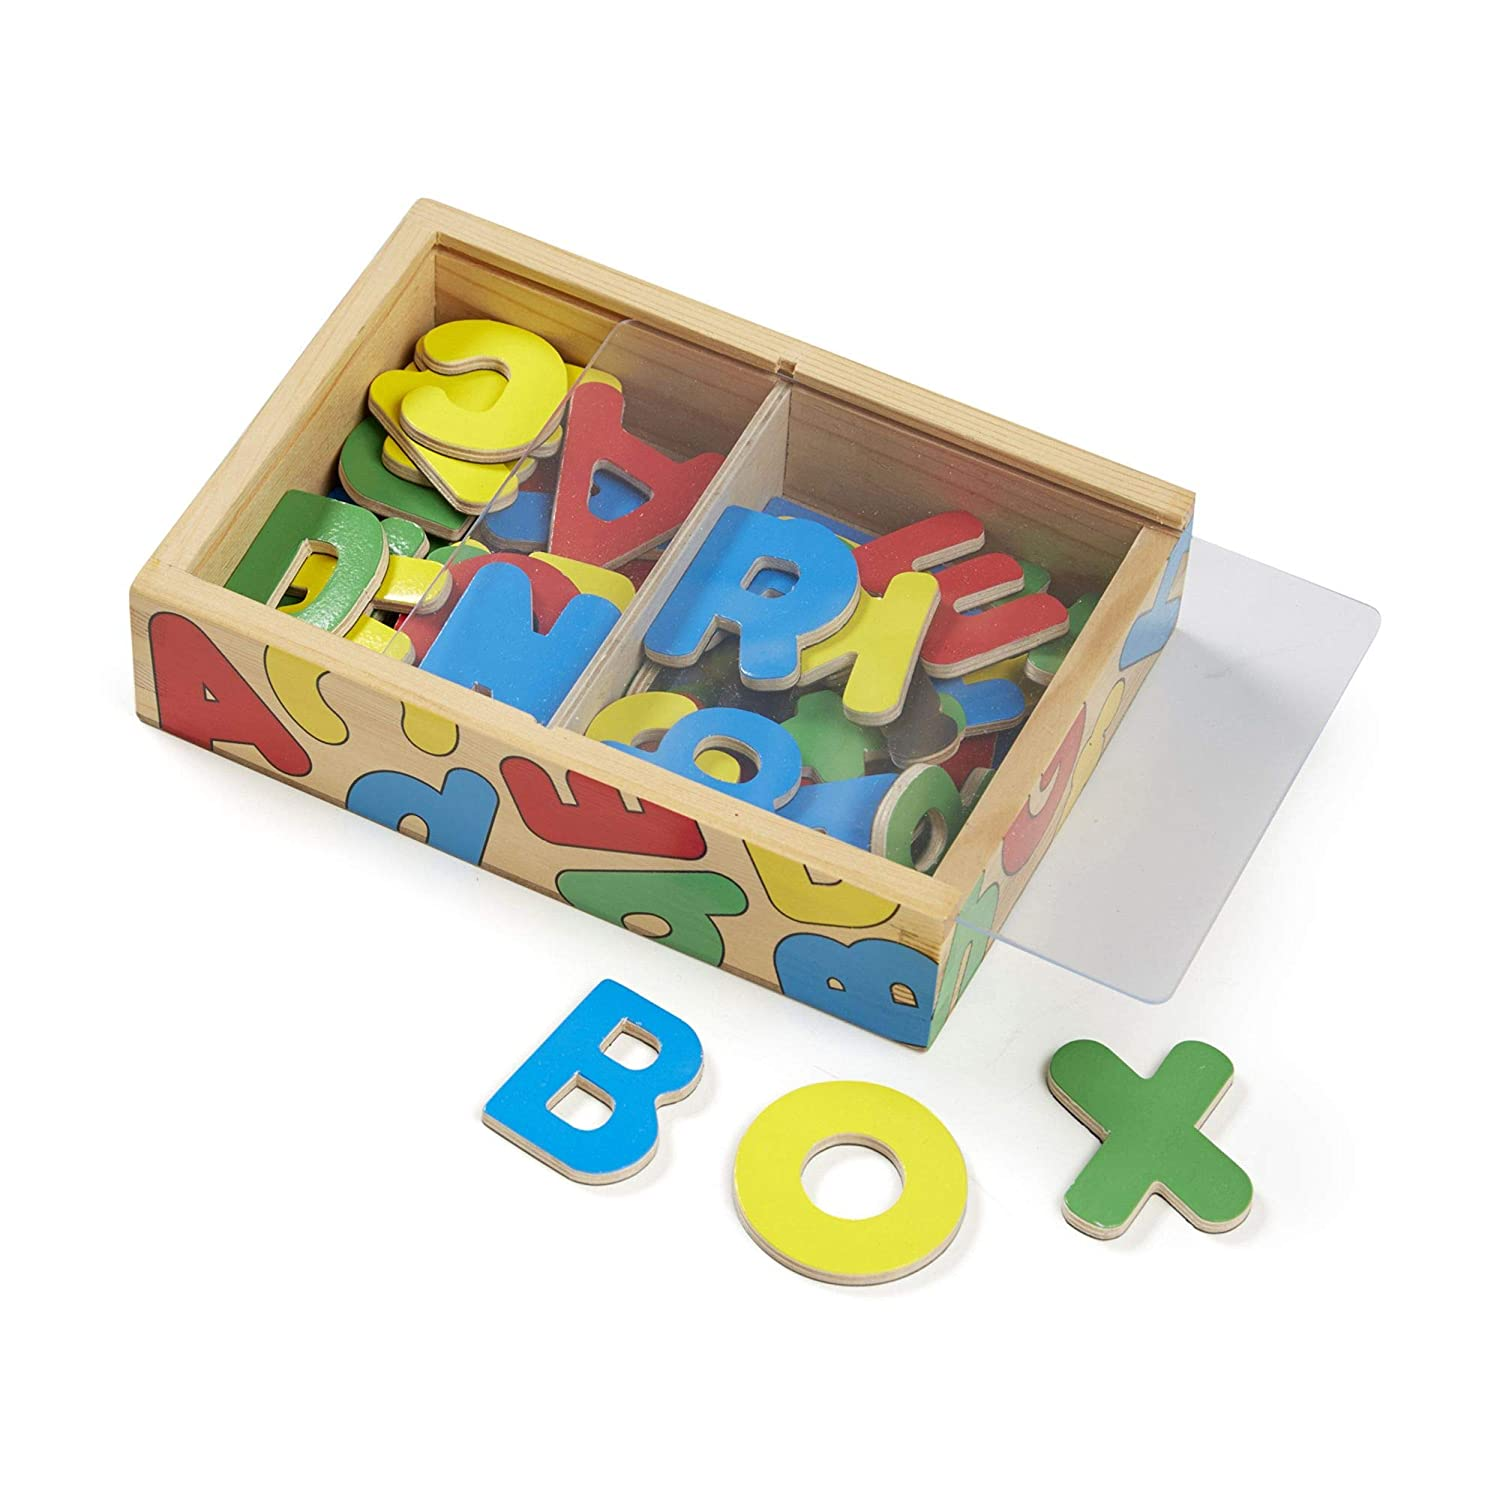 Melissa & Doug 52 Wooden Alphabet Magnets in a Box, Developmental Toys, Sturdy Wooden Construction, 52 Pieces, 7.8″ H × 5.45″ W × 1.85″ L